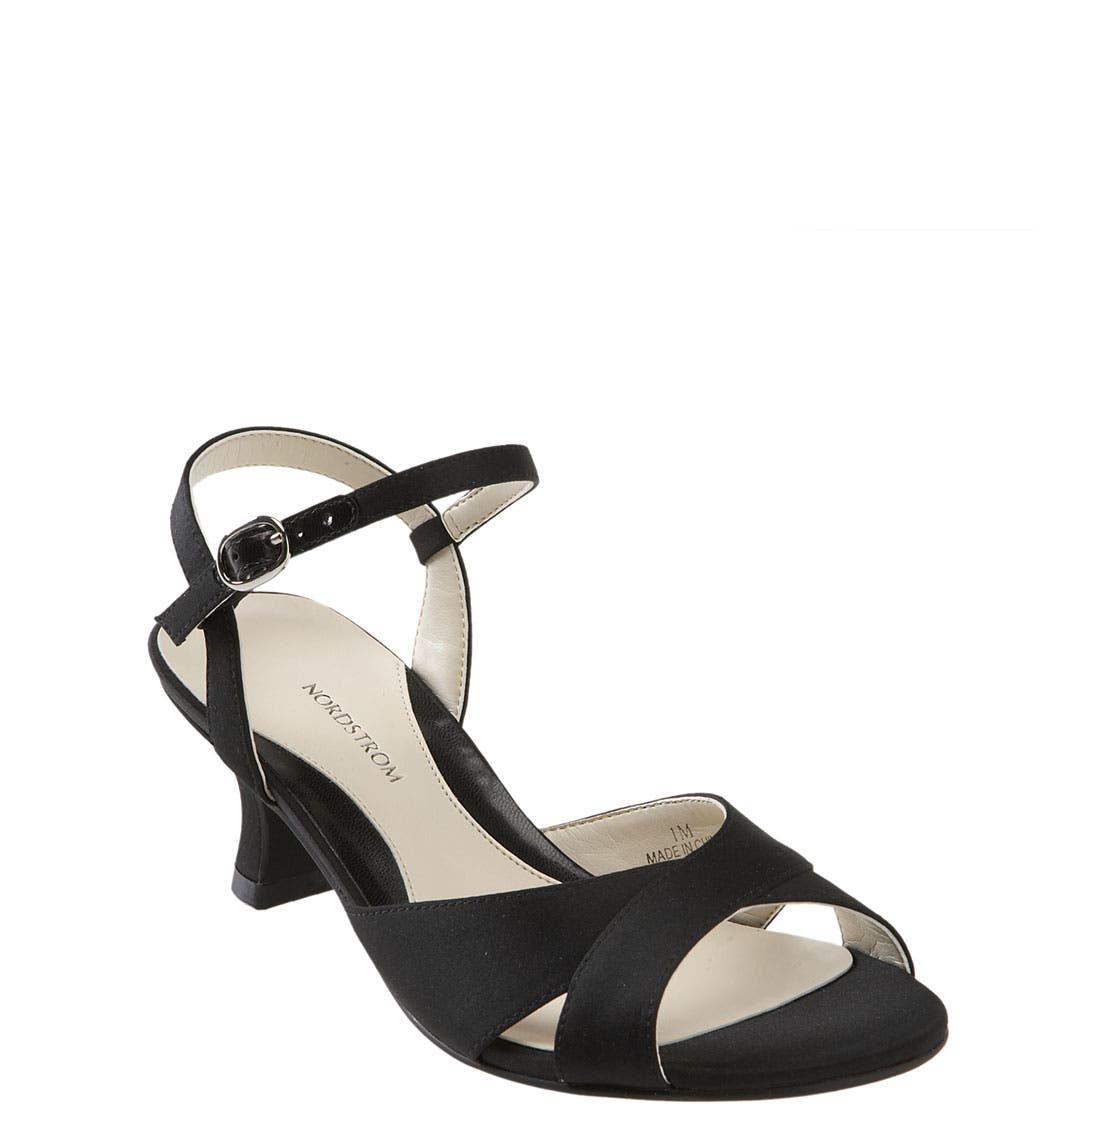 Main Image - Nordstrom 'Erin' Sandal (Toddler, Little Kid & Big Kid)